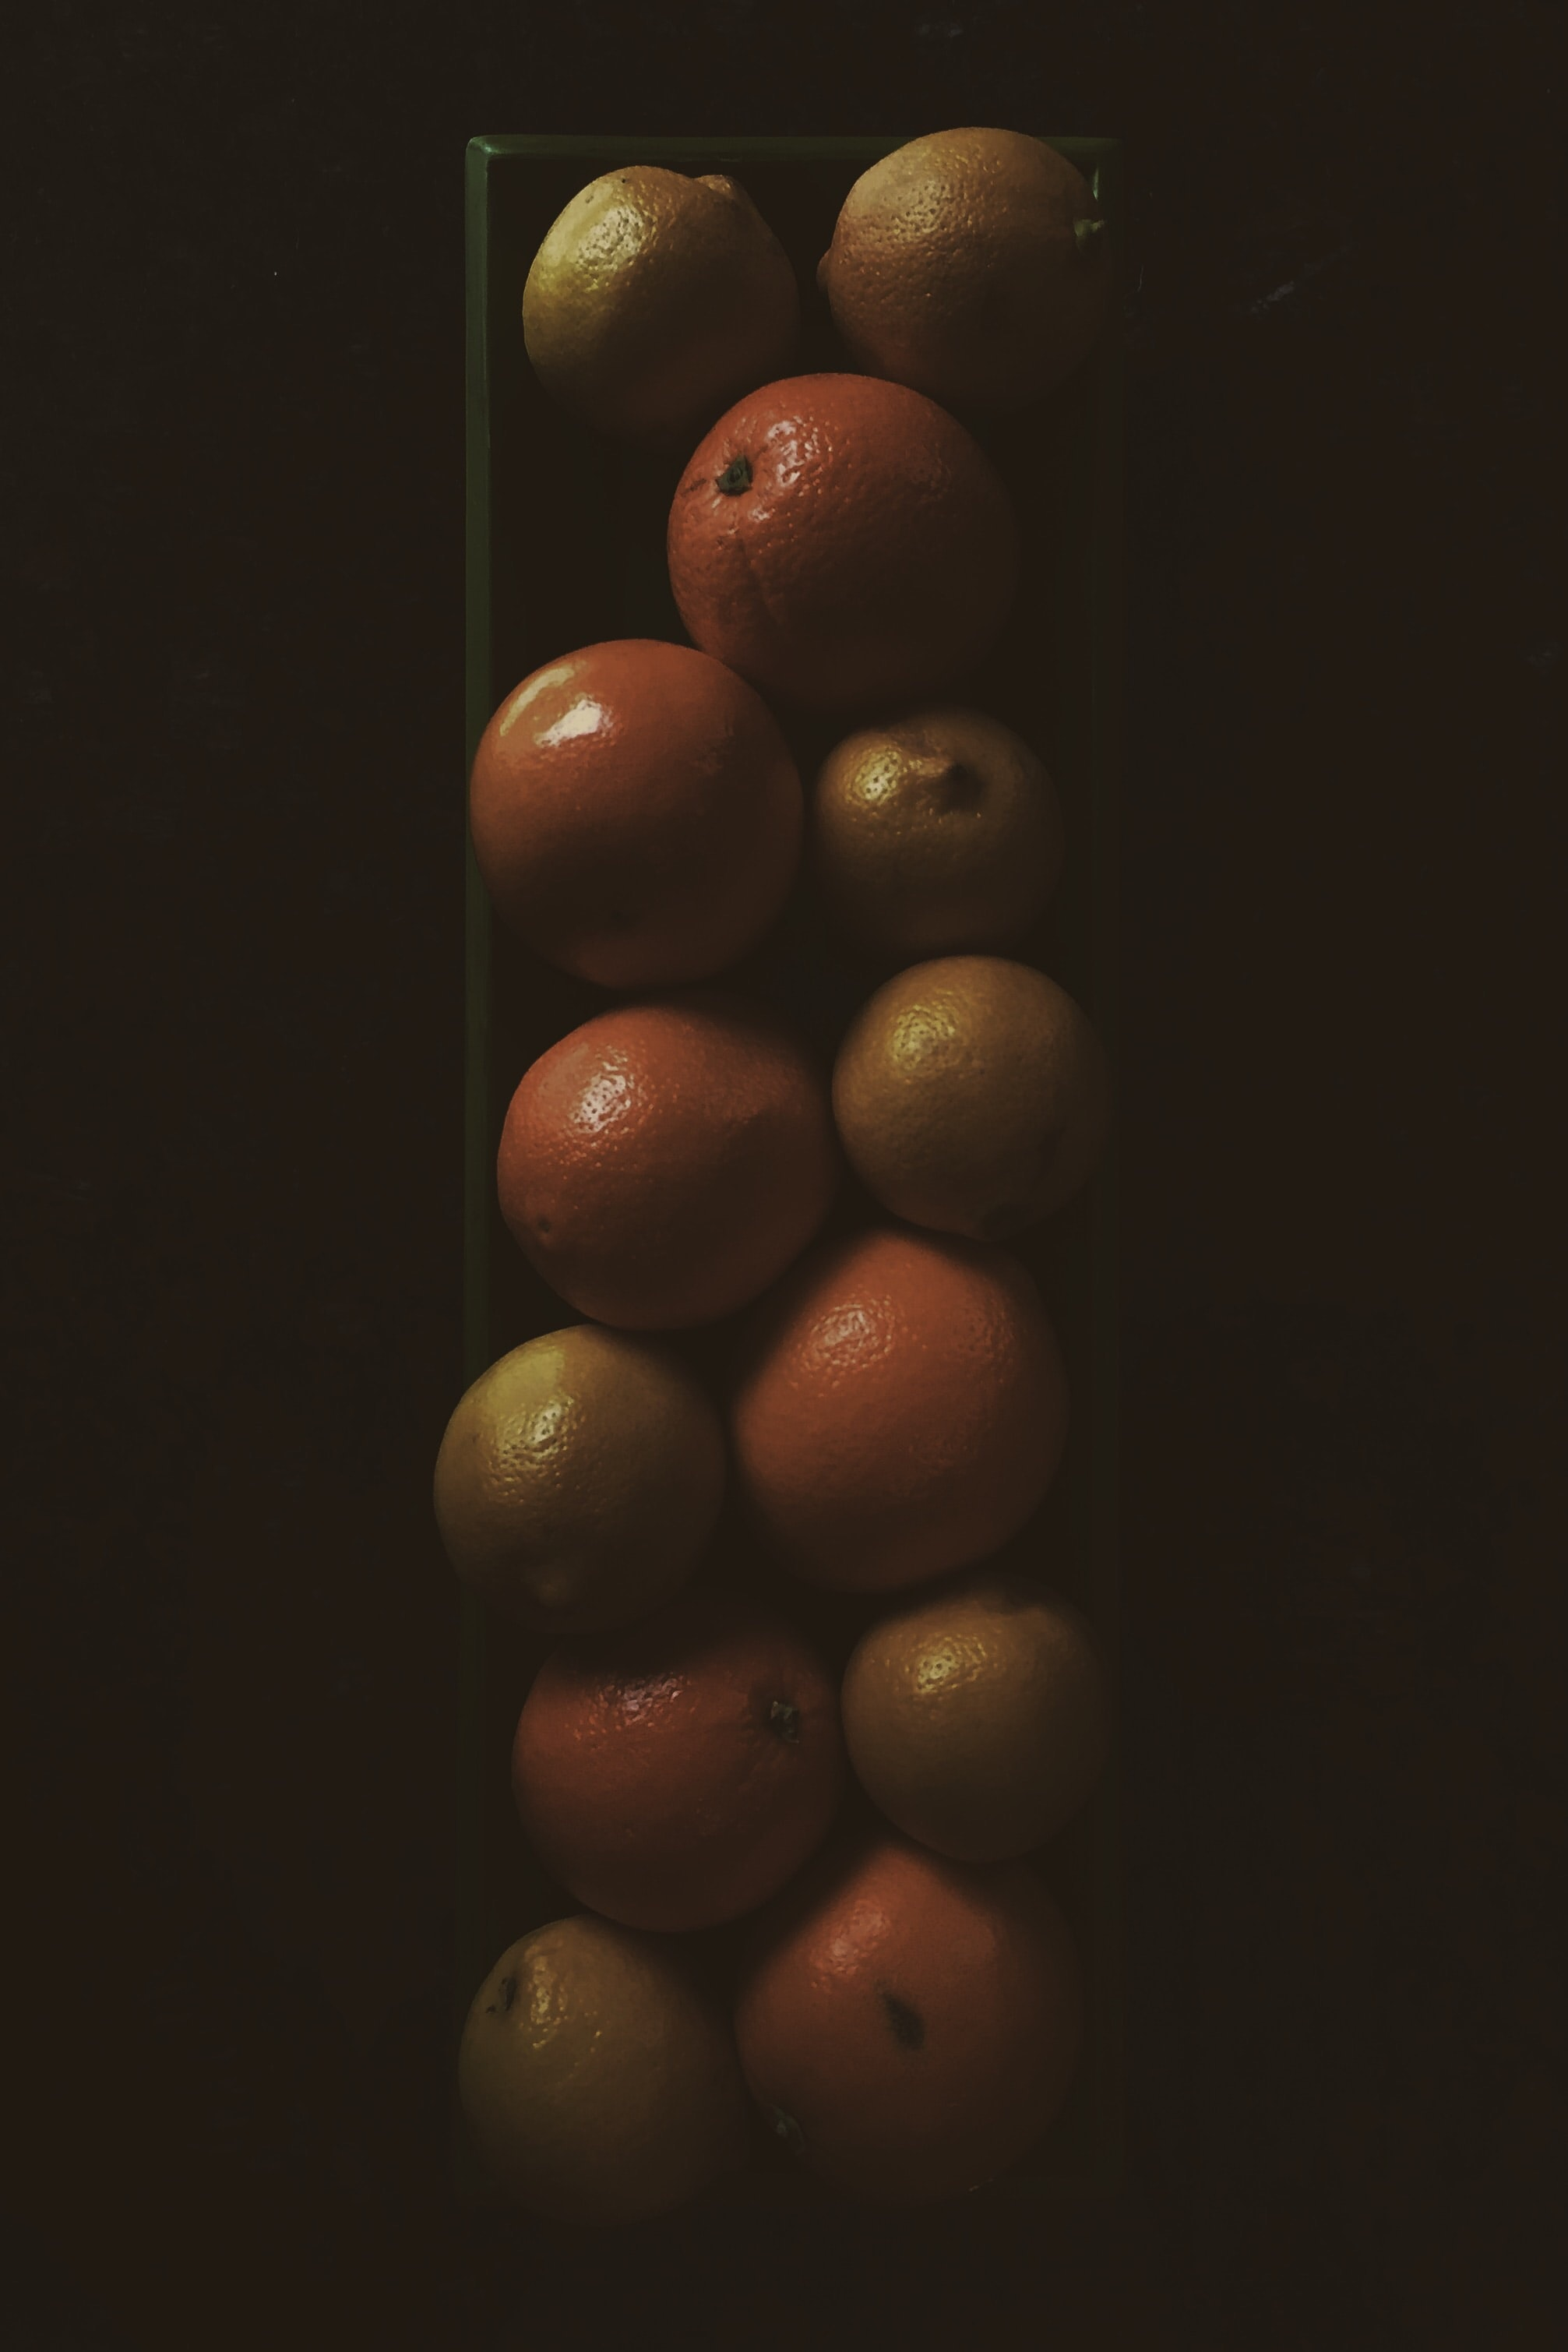 Stack of lemons, oranges, and citrus fruit in a glass vase